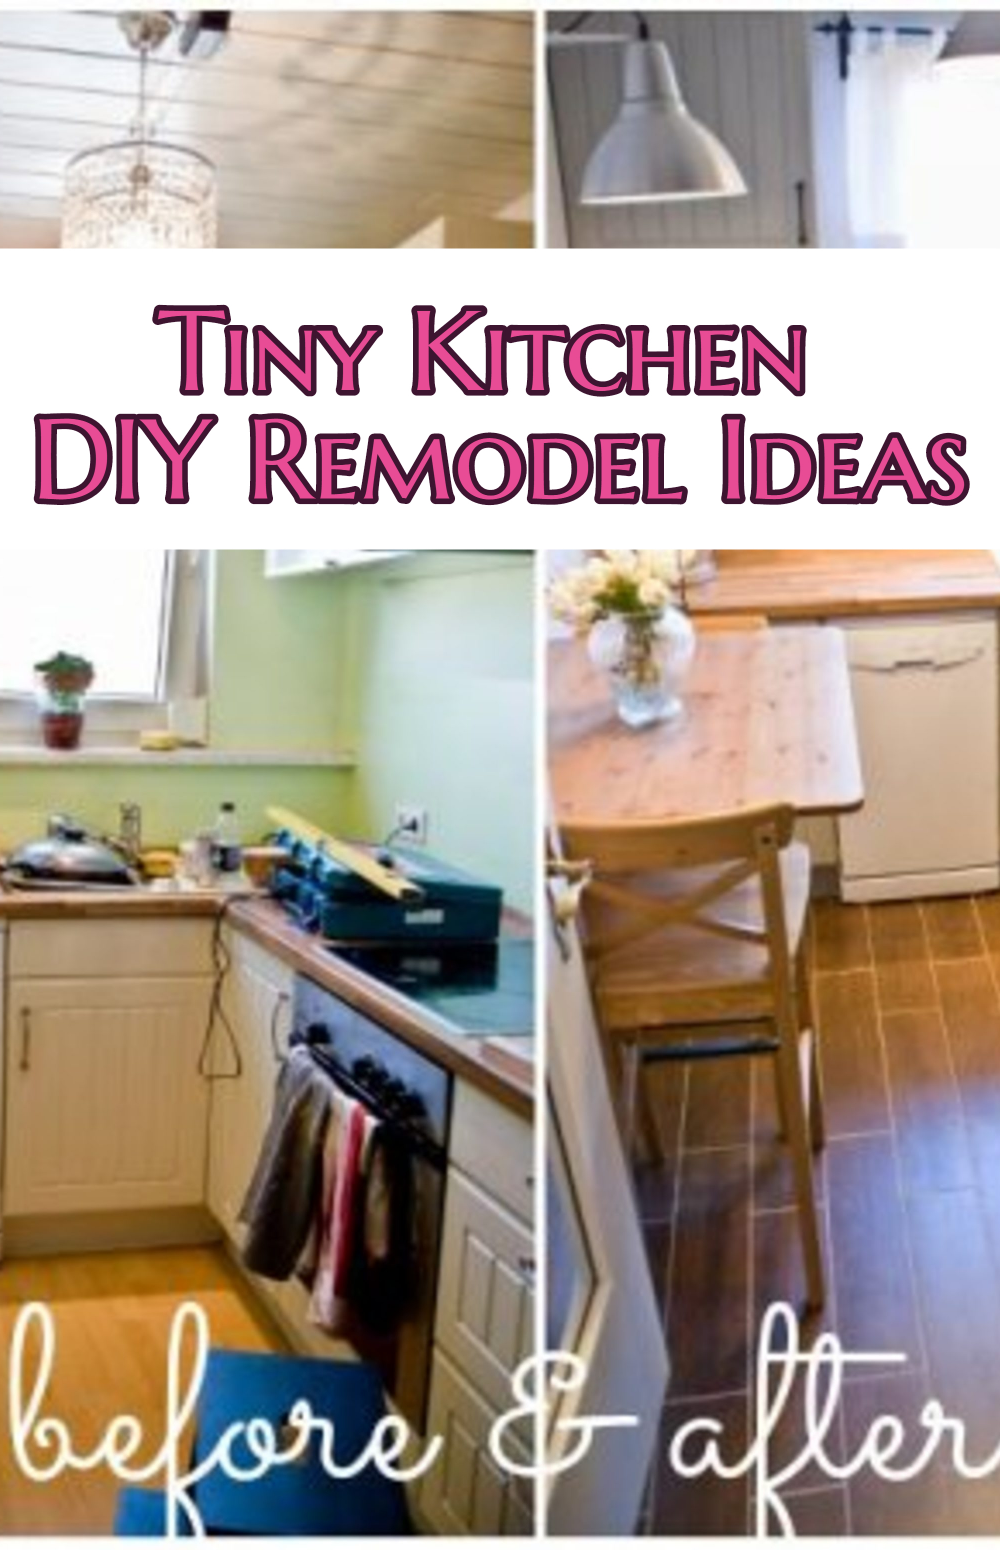 small kitchen diy ideas before after remodel pictures of tiny kitchens small kitchen remodels Small Kitchen Ideas DIY Tiny Kitchen Remodel results before and after Great ideas for